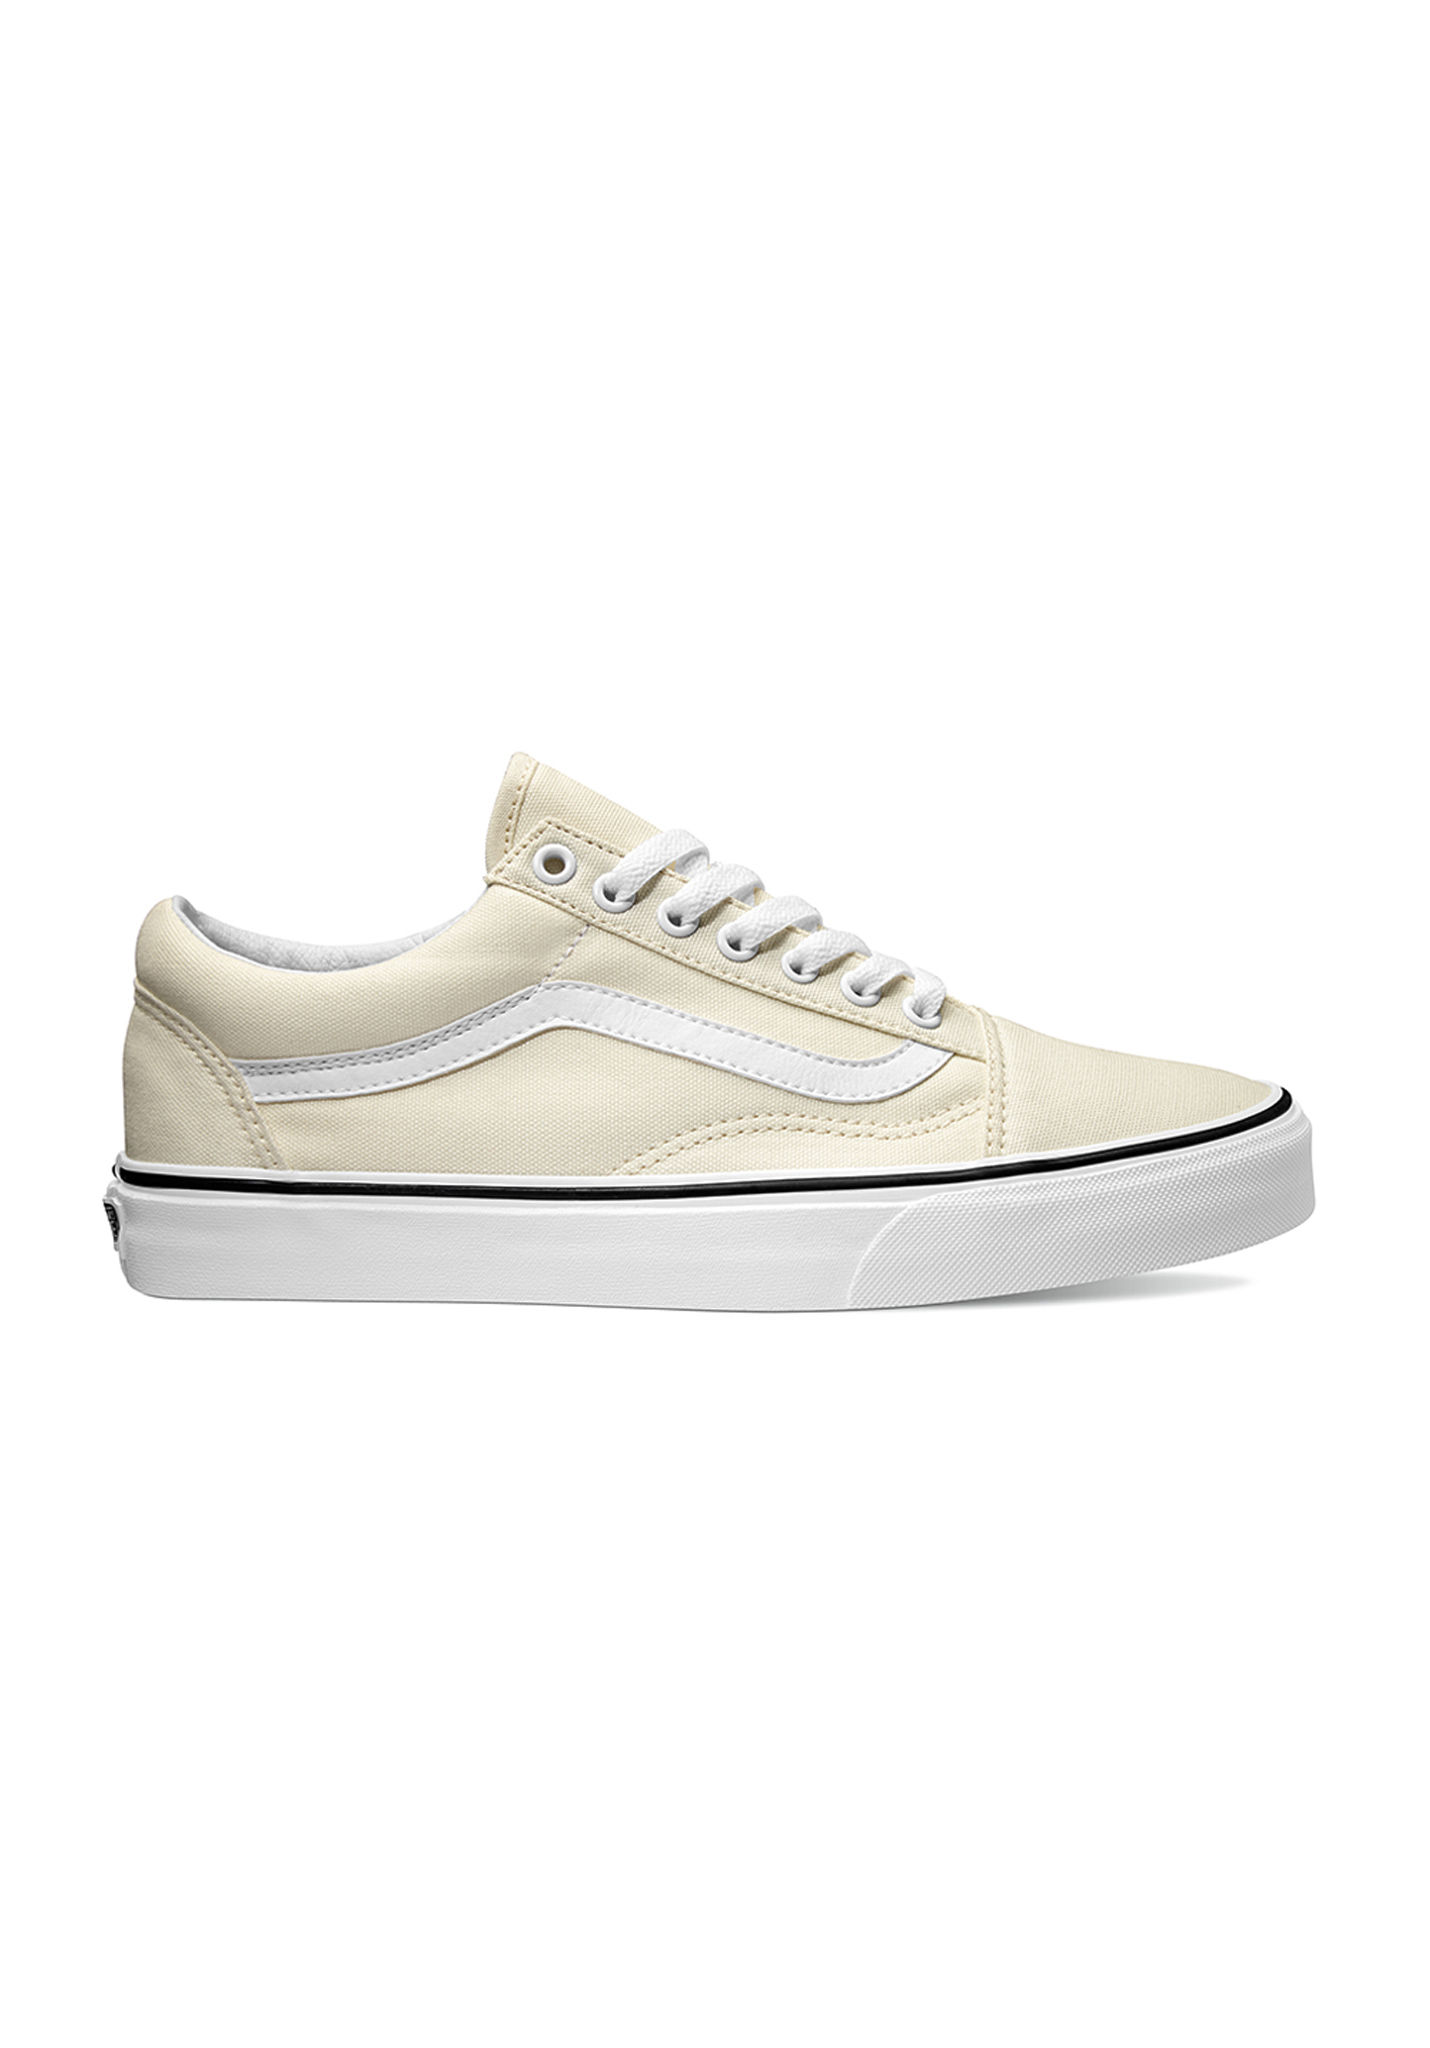 planet sports vans old skool